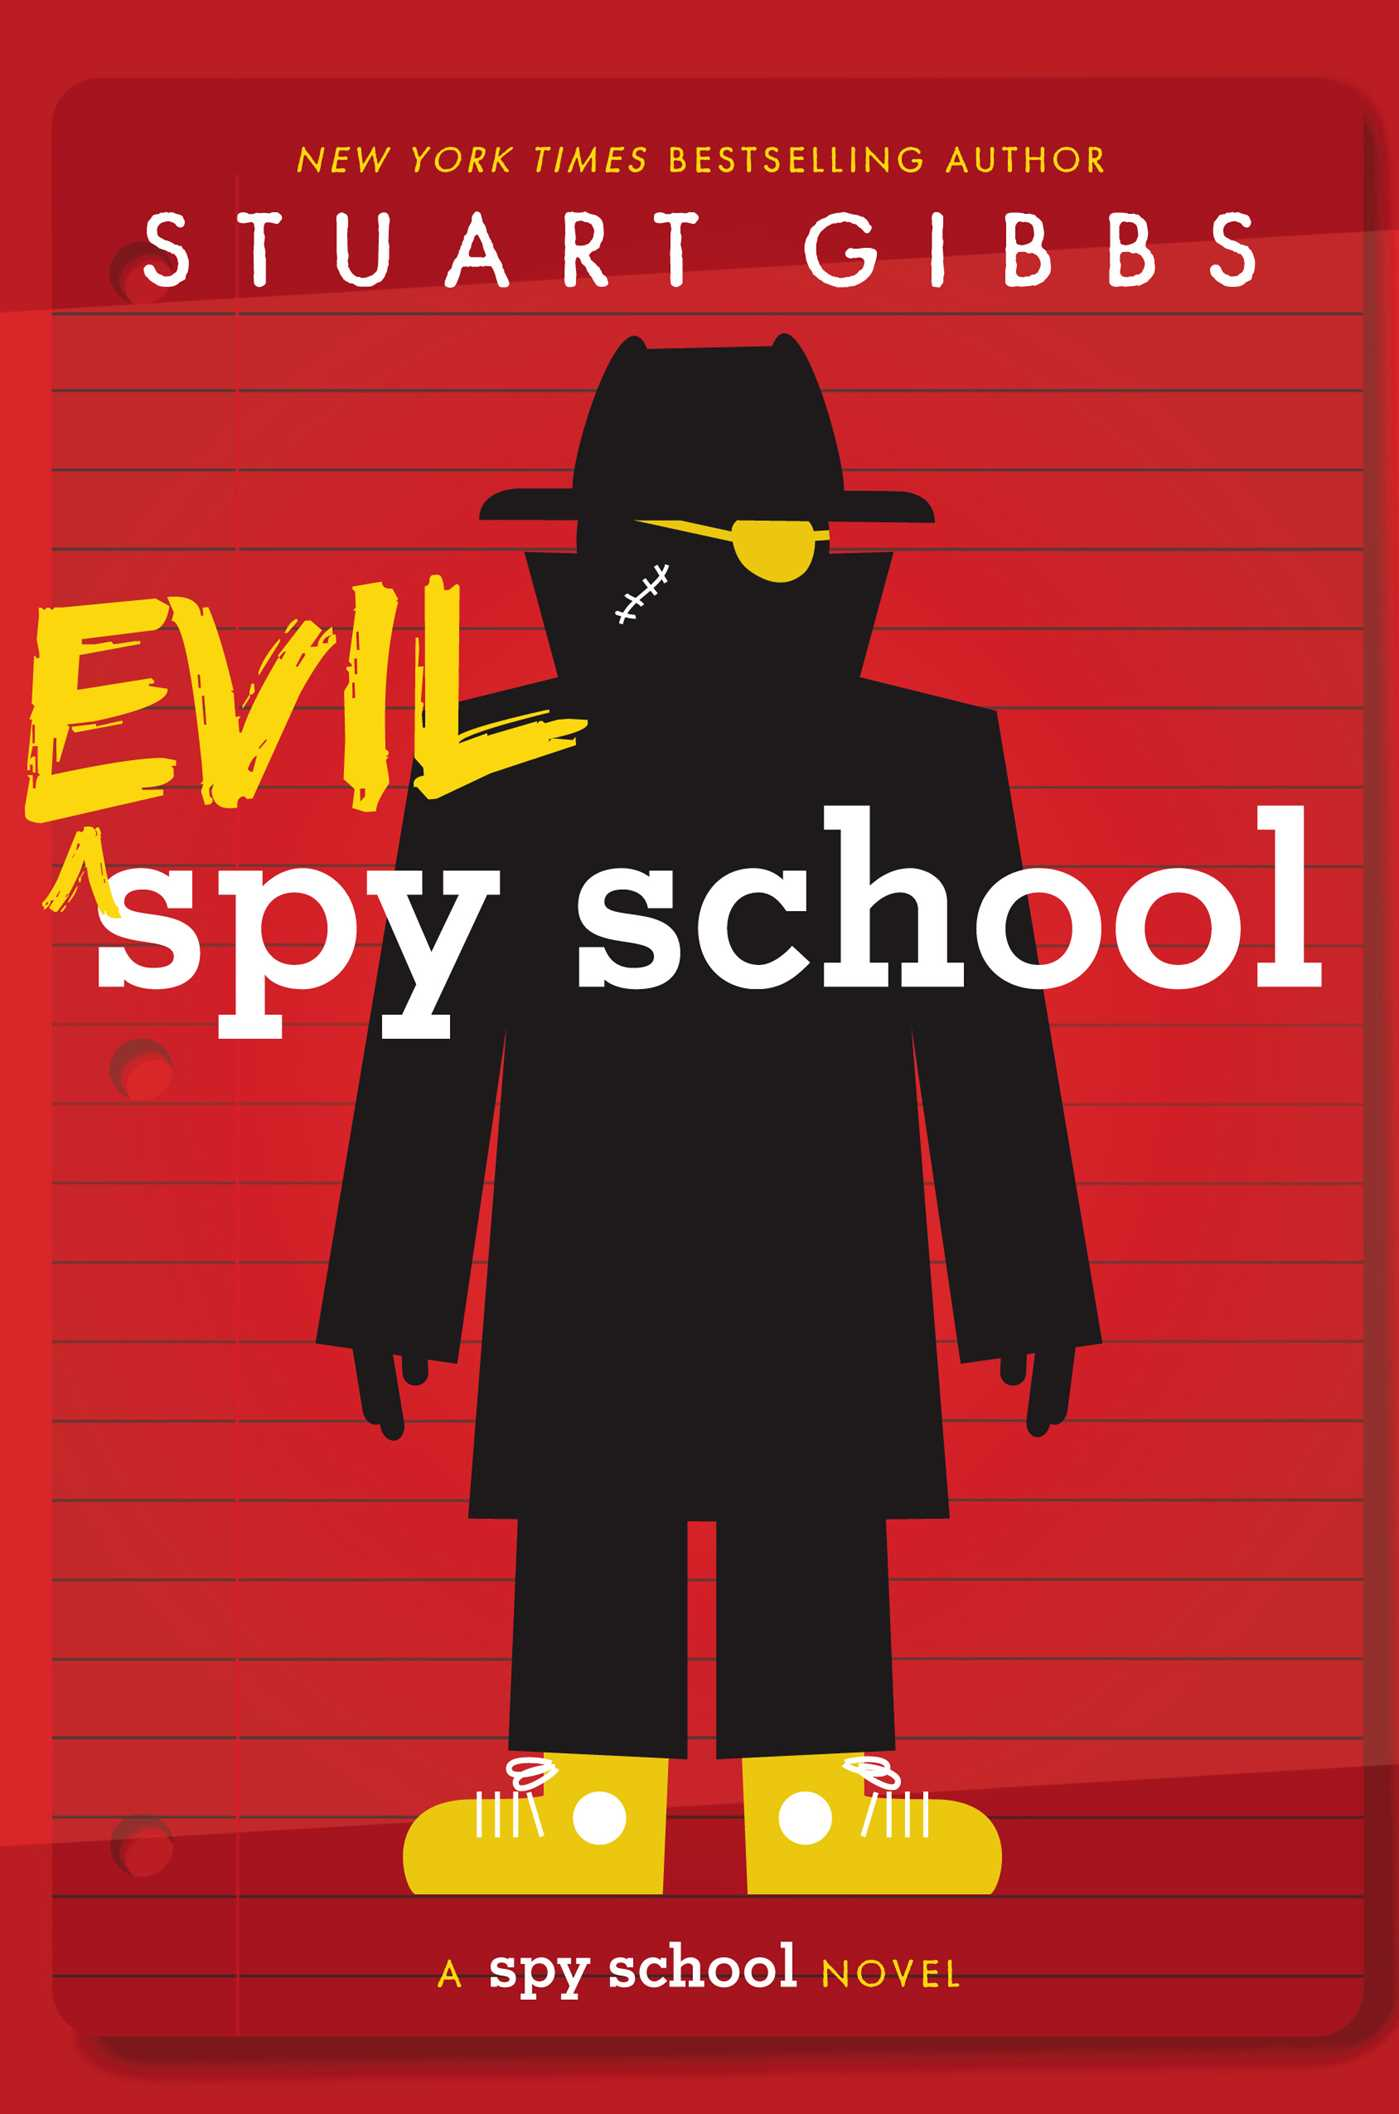 Evil-spy-school-9781442494893_hr